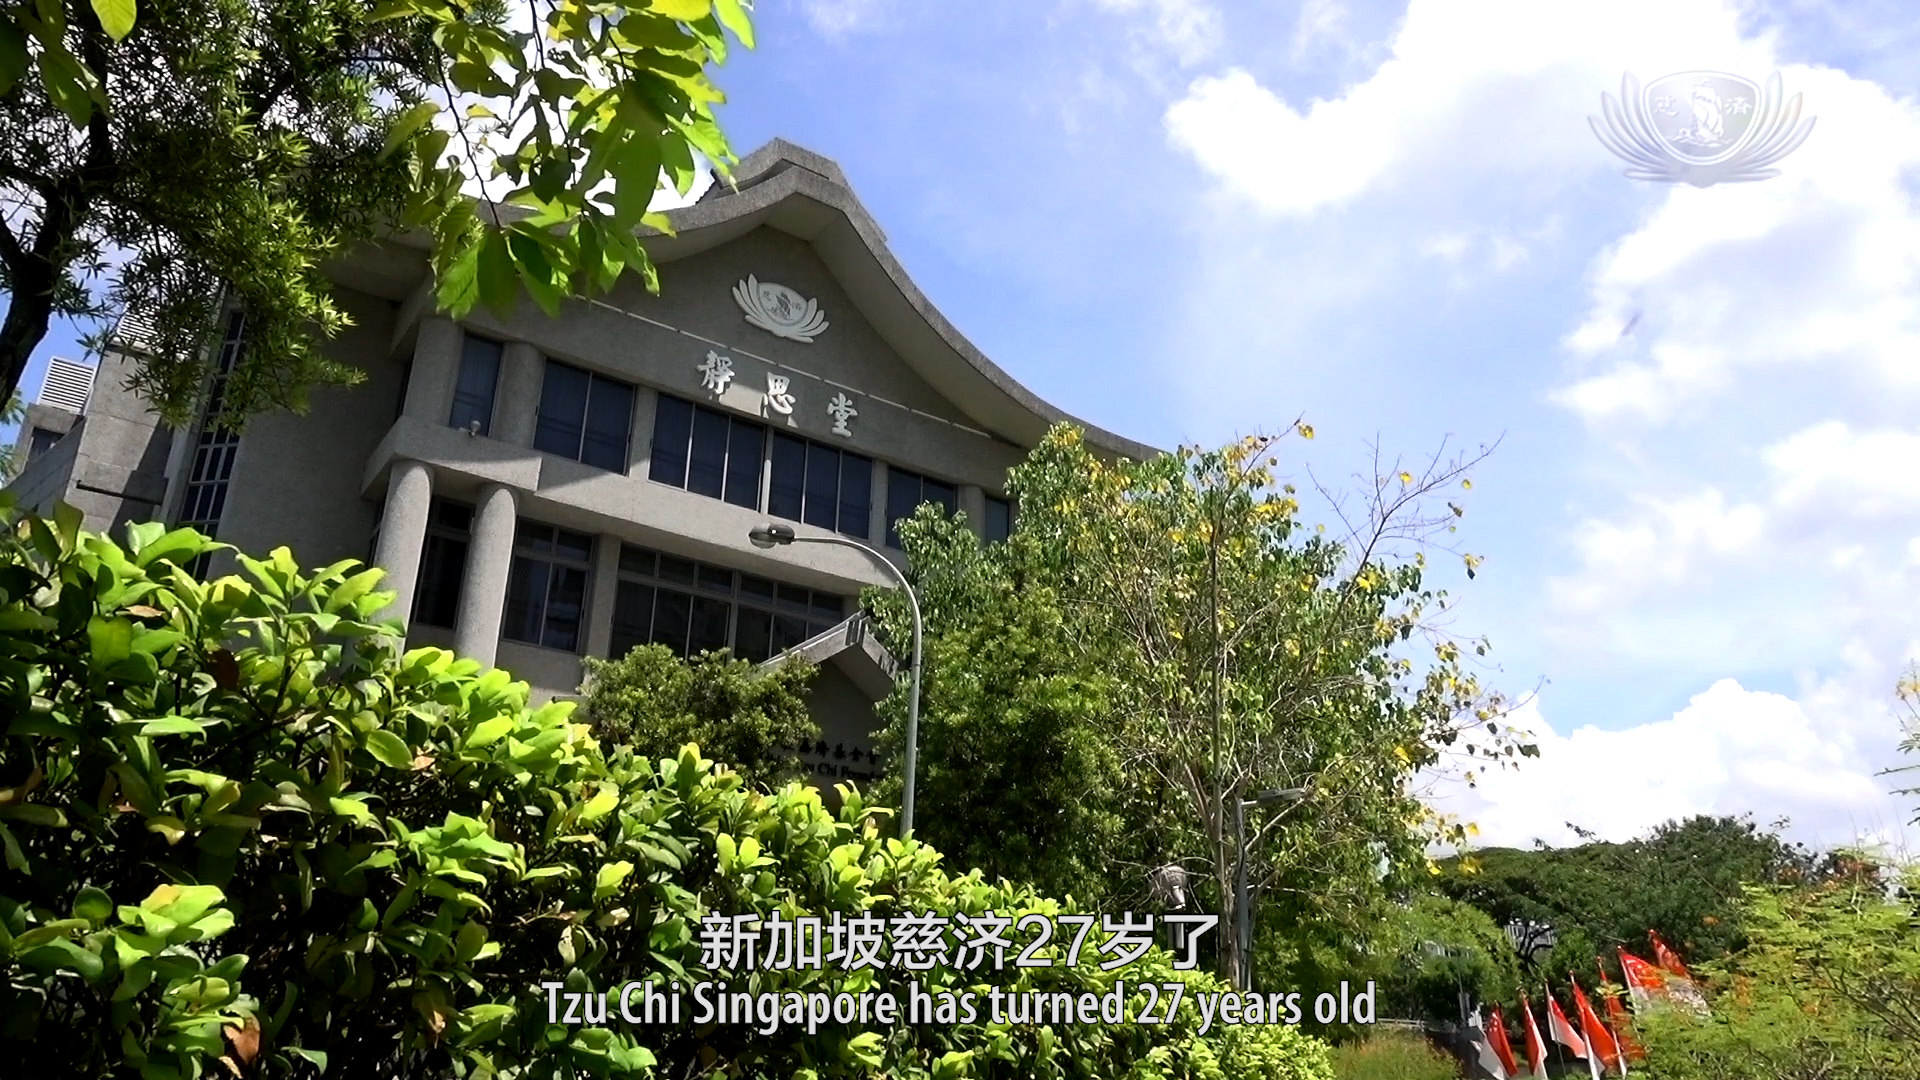 Tzu Chi Singapore celebrates 27th Anniversary across the island